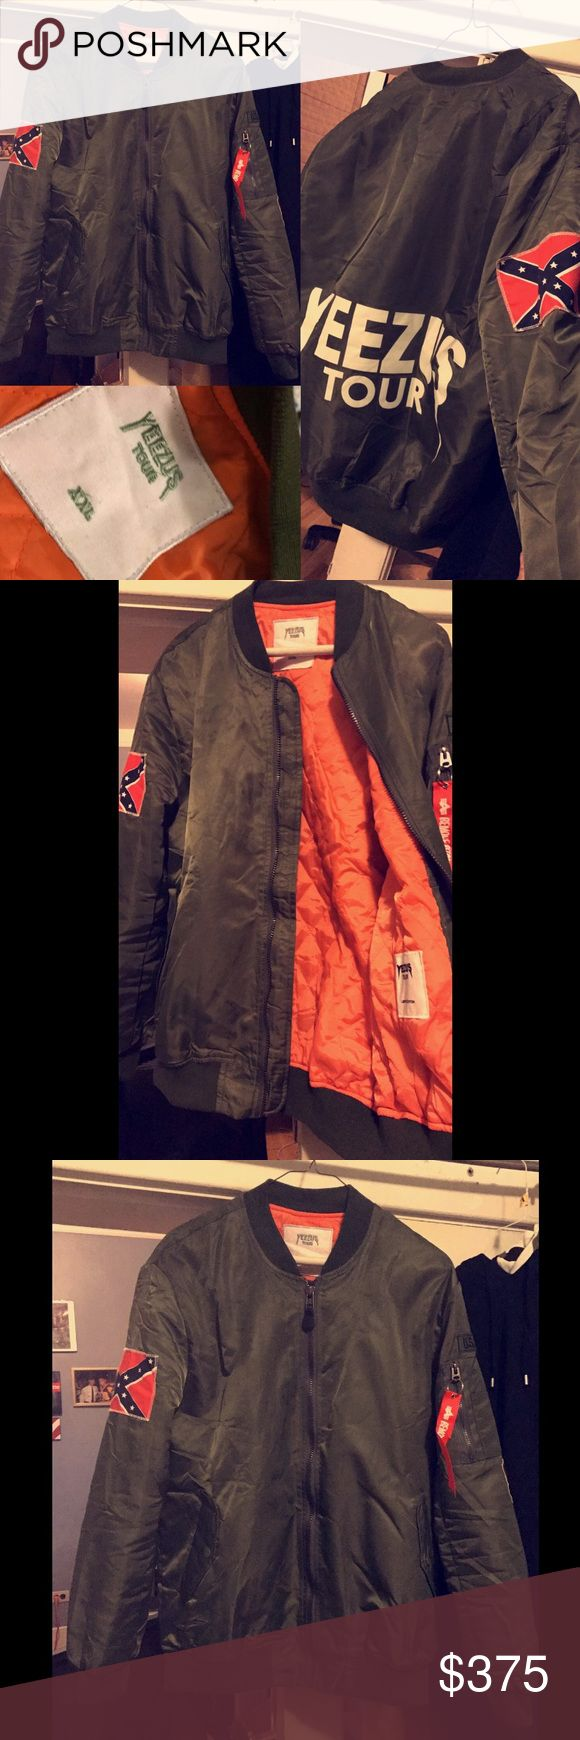 Yeezus Tour Kanye Yeezy Bomber Jacket Brand new, didn't fit when I got it in the mail so it's never been worn out 10/10 condition. Size tag says XXL but fits like a L-XL. Really great Jacket wish I didn't have to sell it. Asking $375 OBO any ?'s comment below or txt me! 4808089979 All Love <3 Yeezy Jackets & Coats Bomber & Varsity